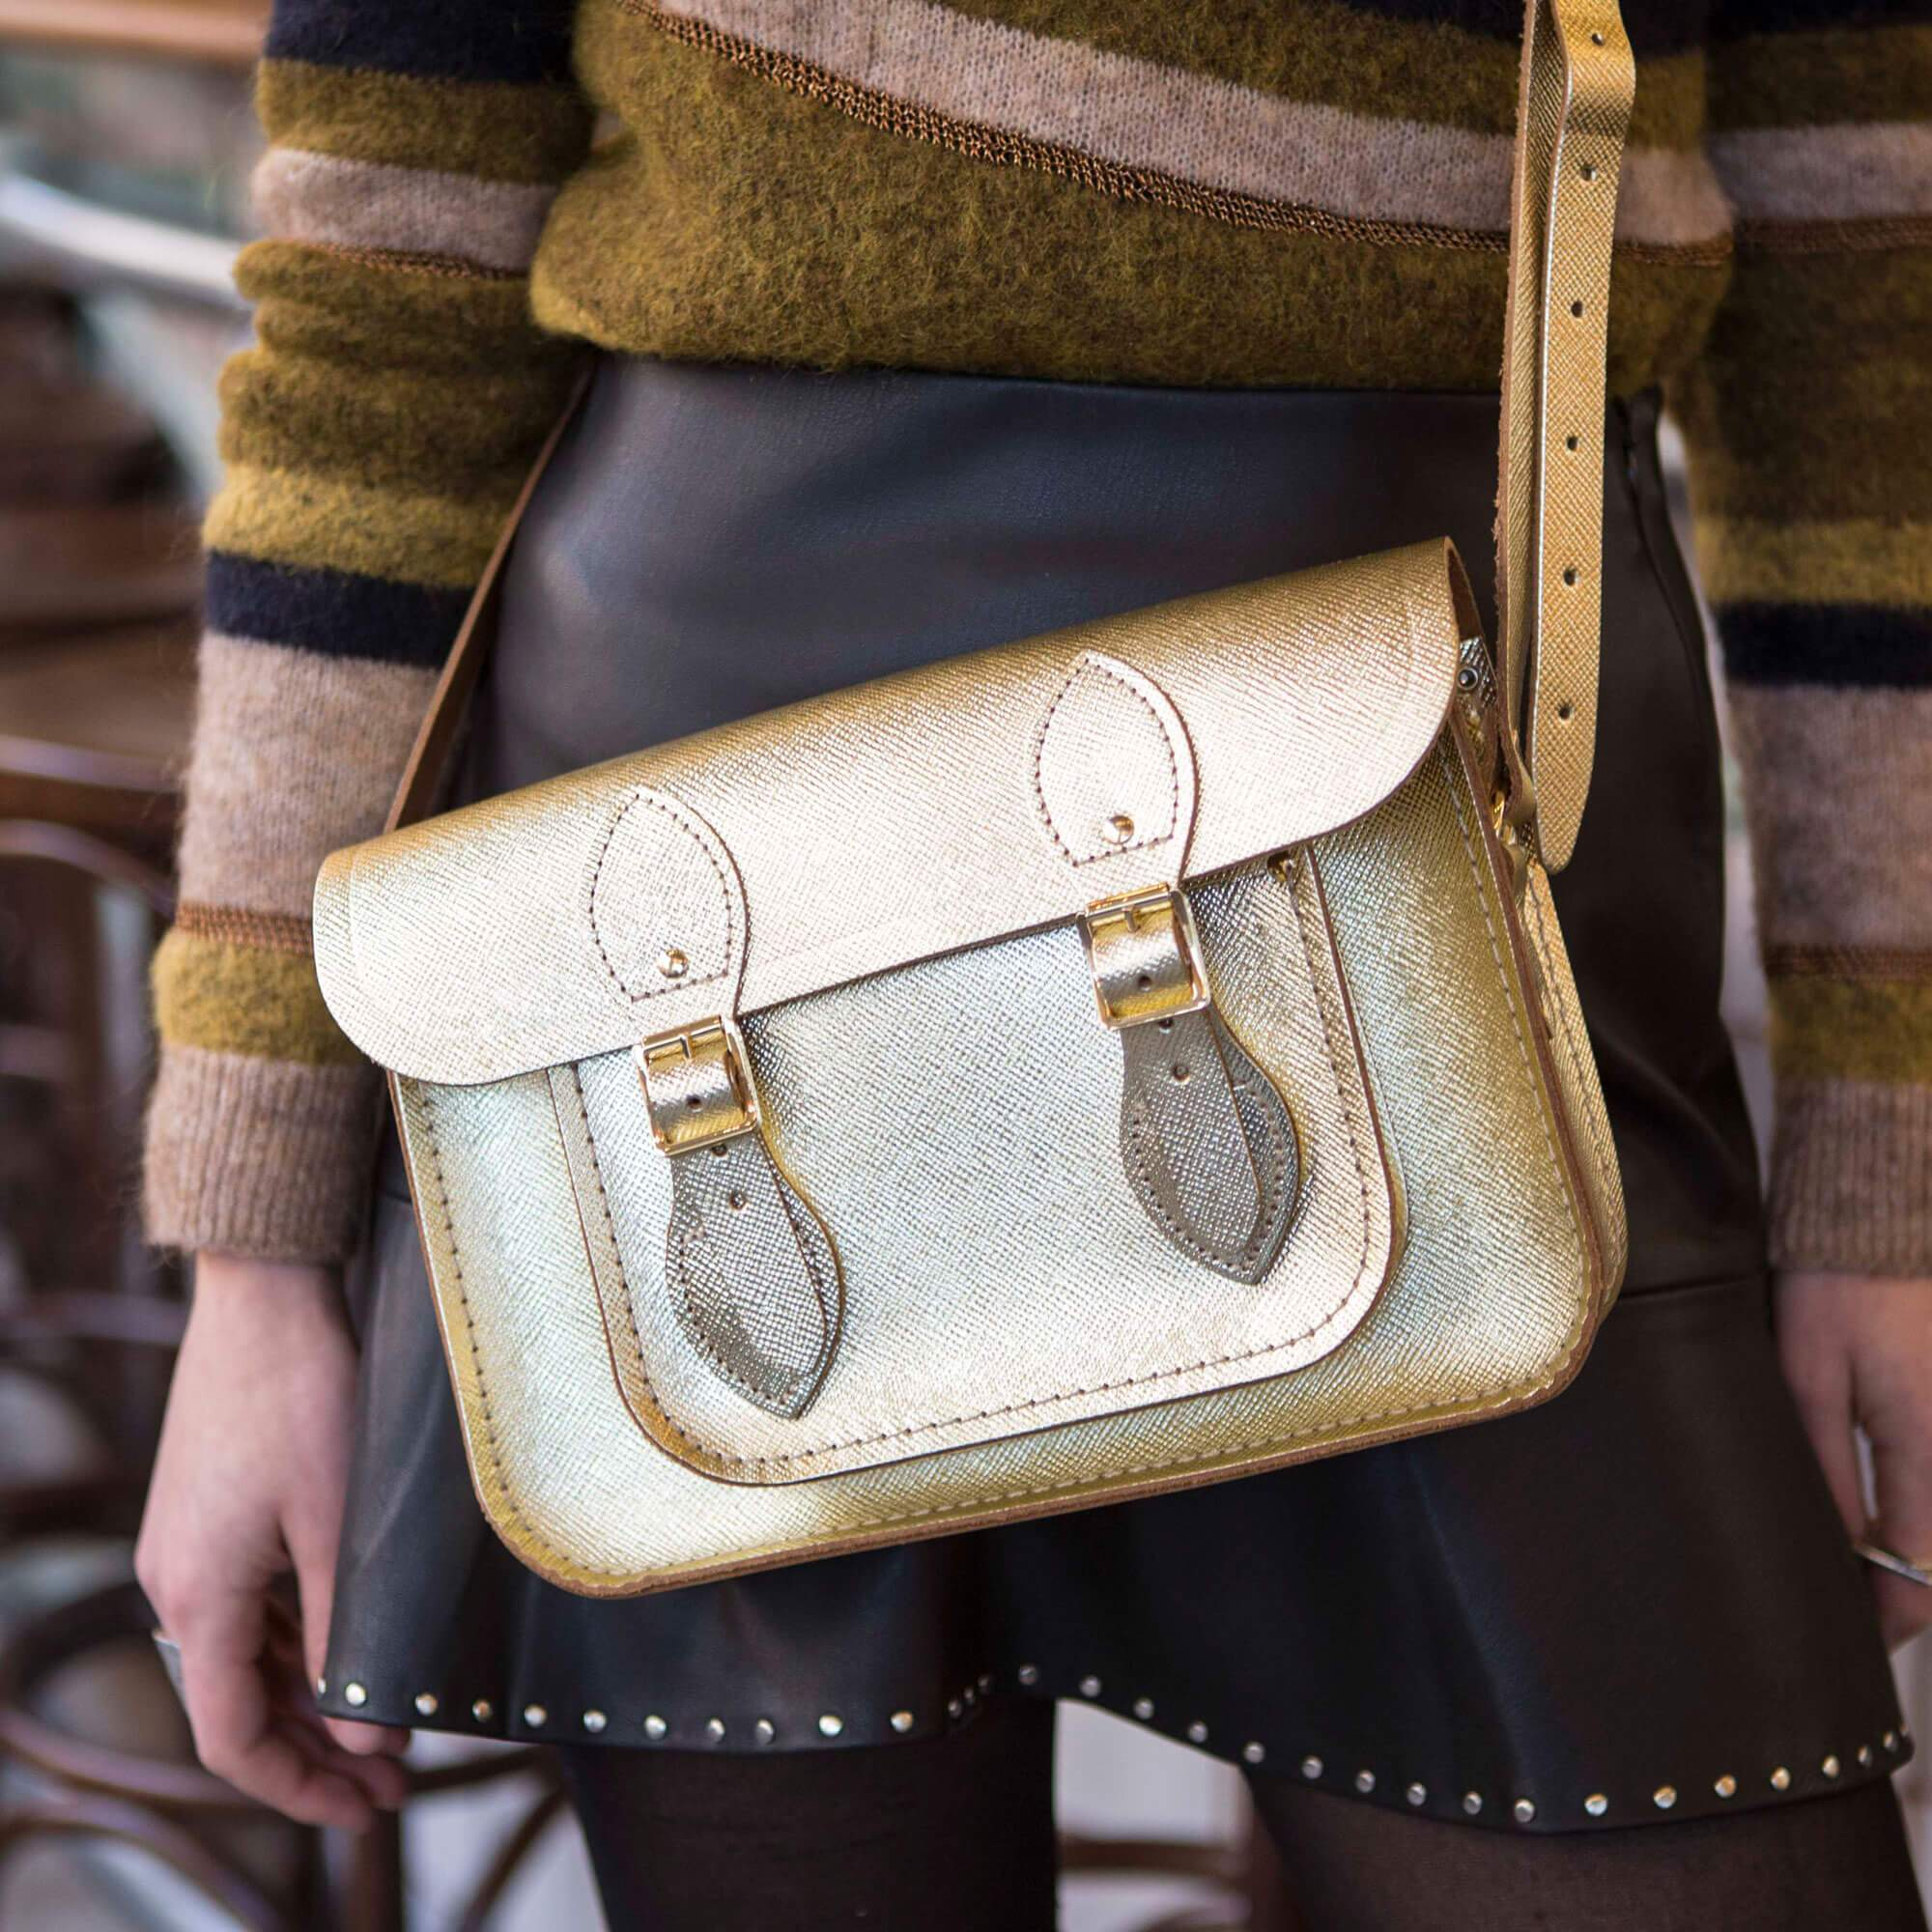 11 inch magnetic satchel in Gold Saffiano leather - SAVE 50% Was £150 now £75 - limited stocks available. Plus save a further 10% with discount code EXTRA10